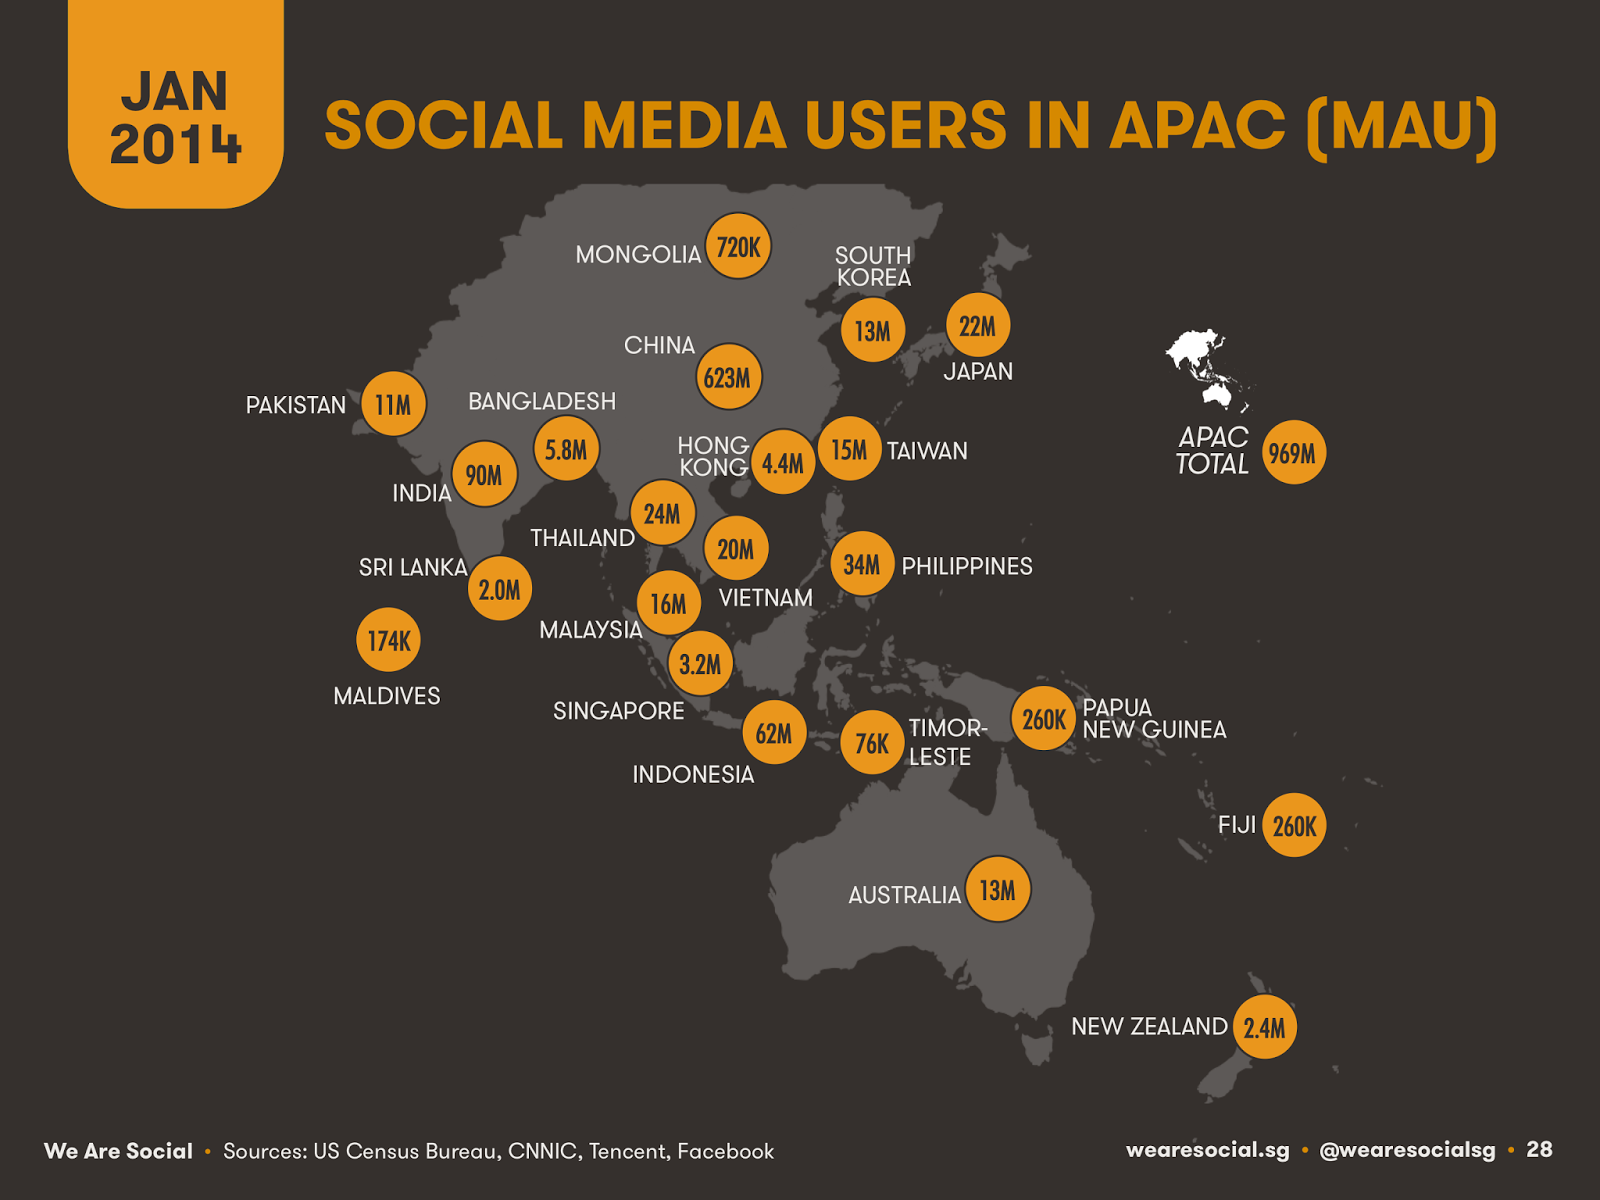 Asia Pacific Social Media Users Stats